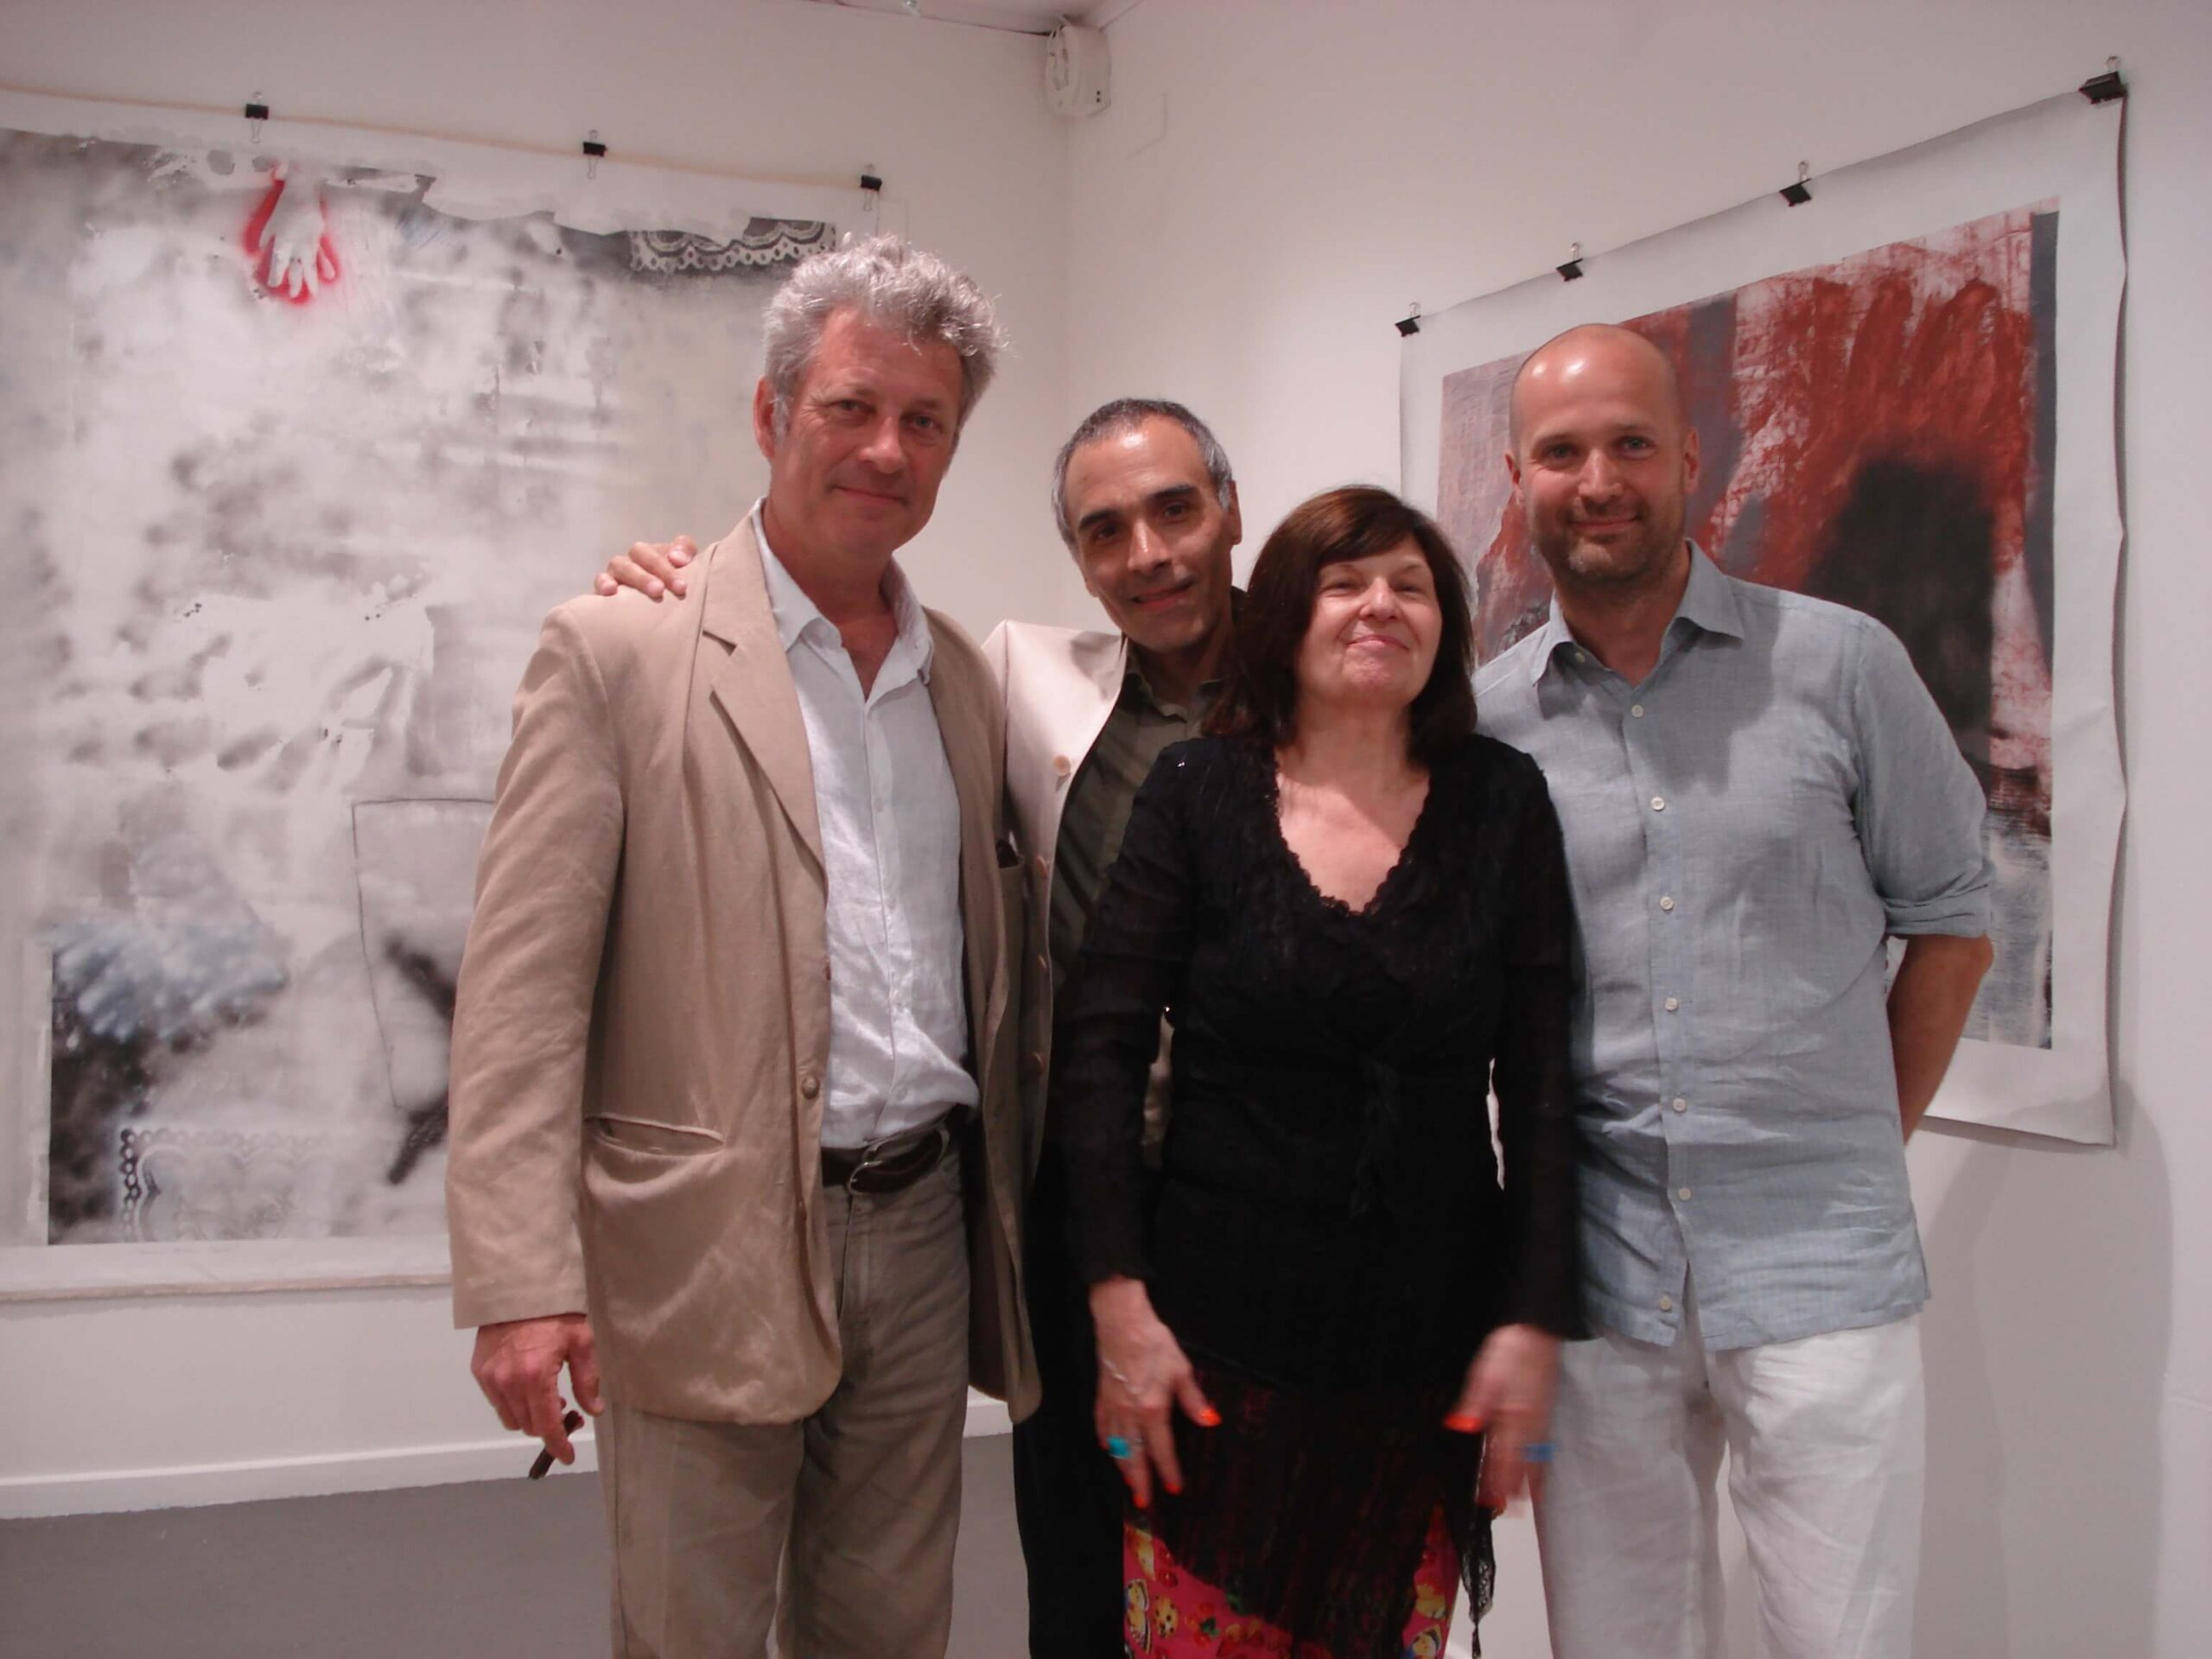 artist Dorothée Selz, artist Luc Gauthier, Jean-François Pascal, director of the Paradis gallery, and Alexis Yebra